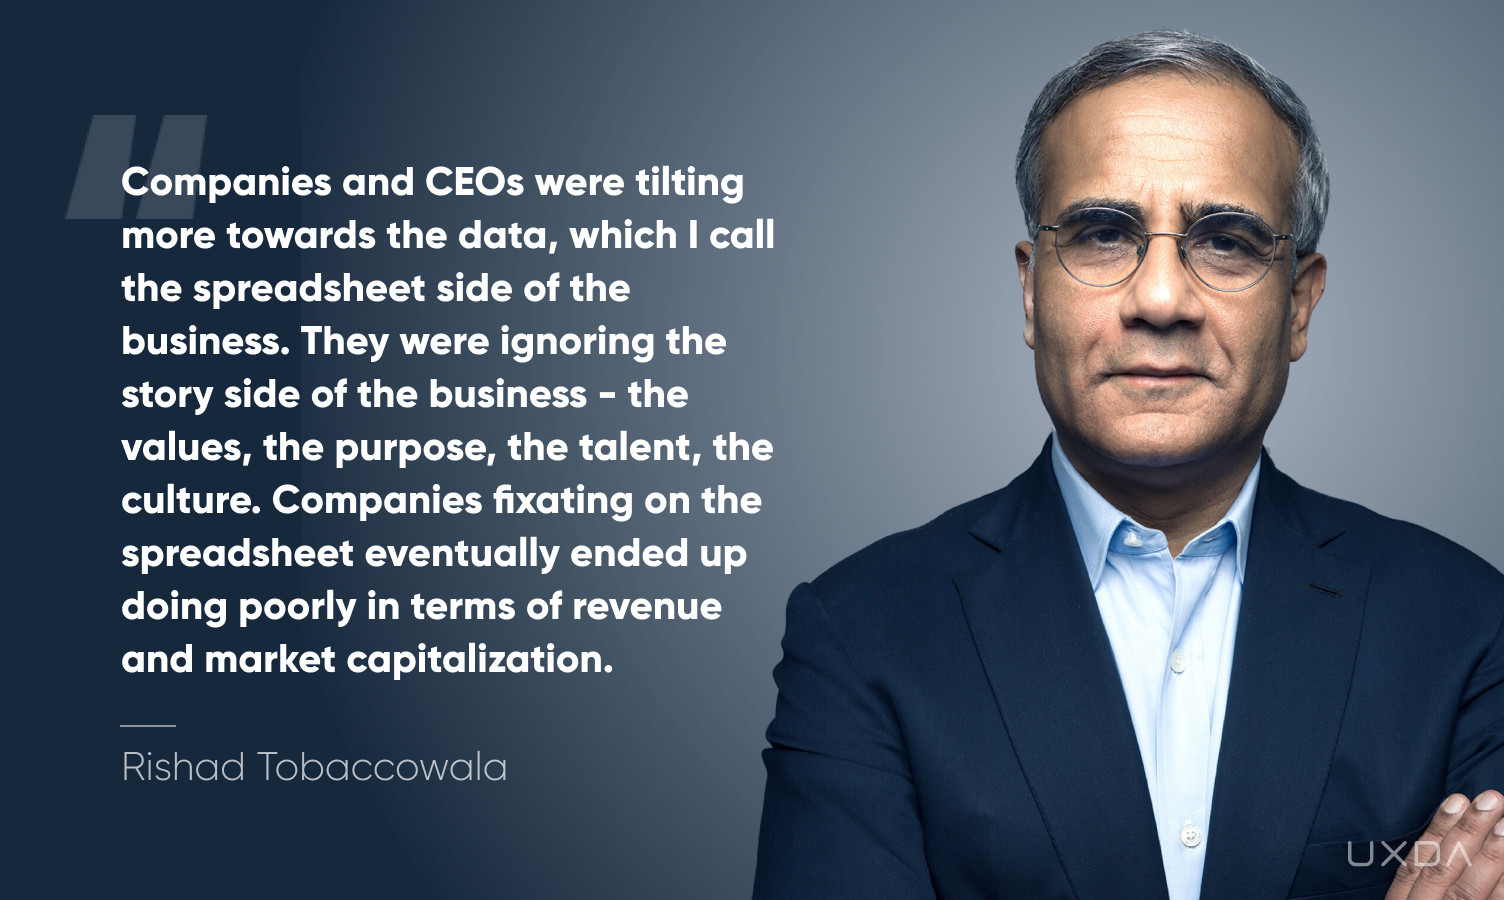 Exceptional Financial Product Design with a Soul - Rishad Tobaccowala quote